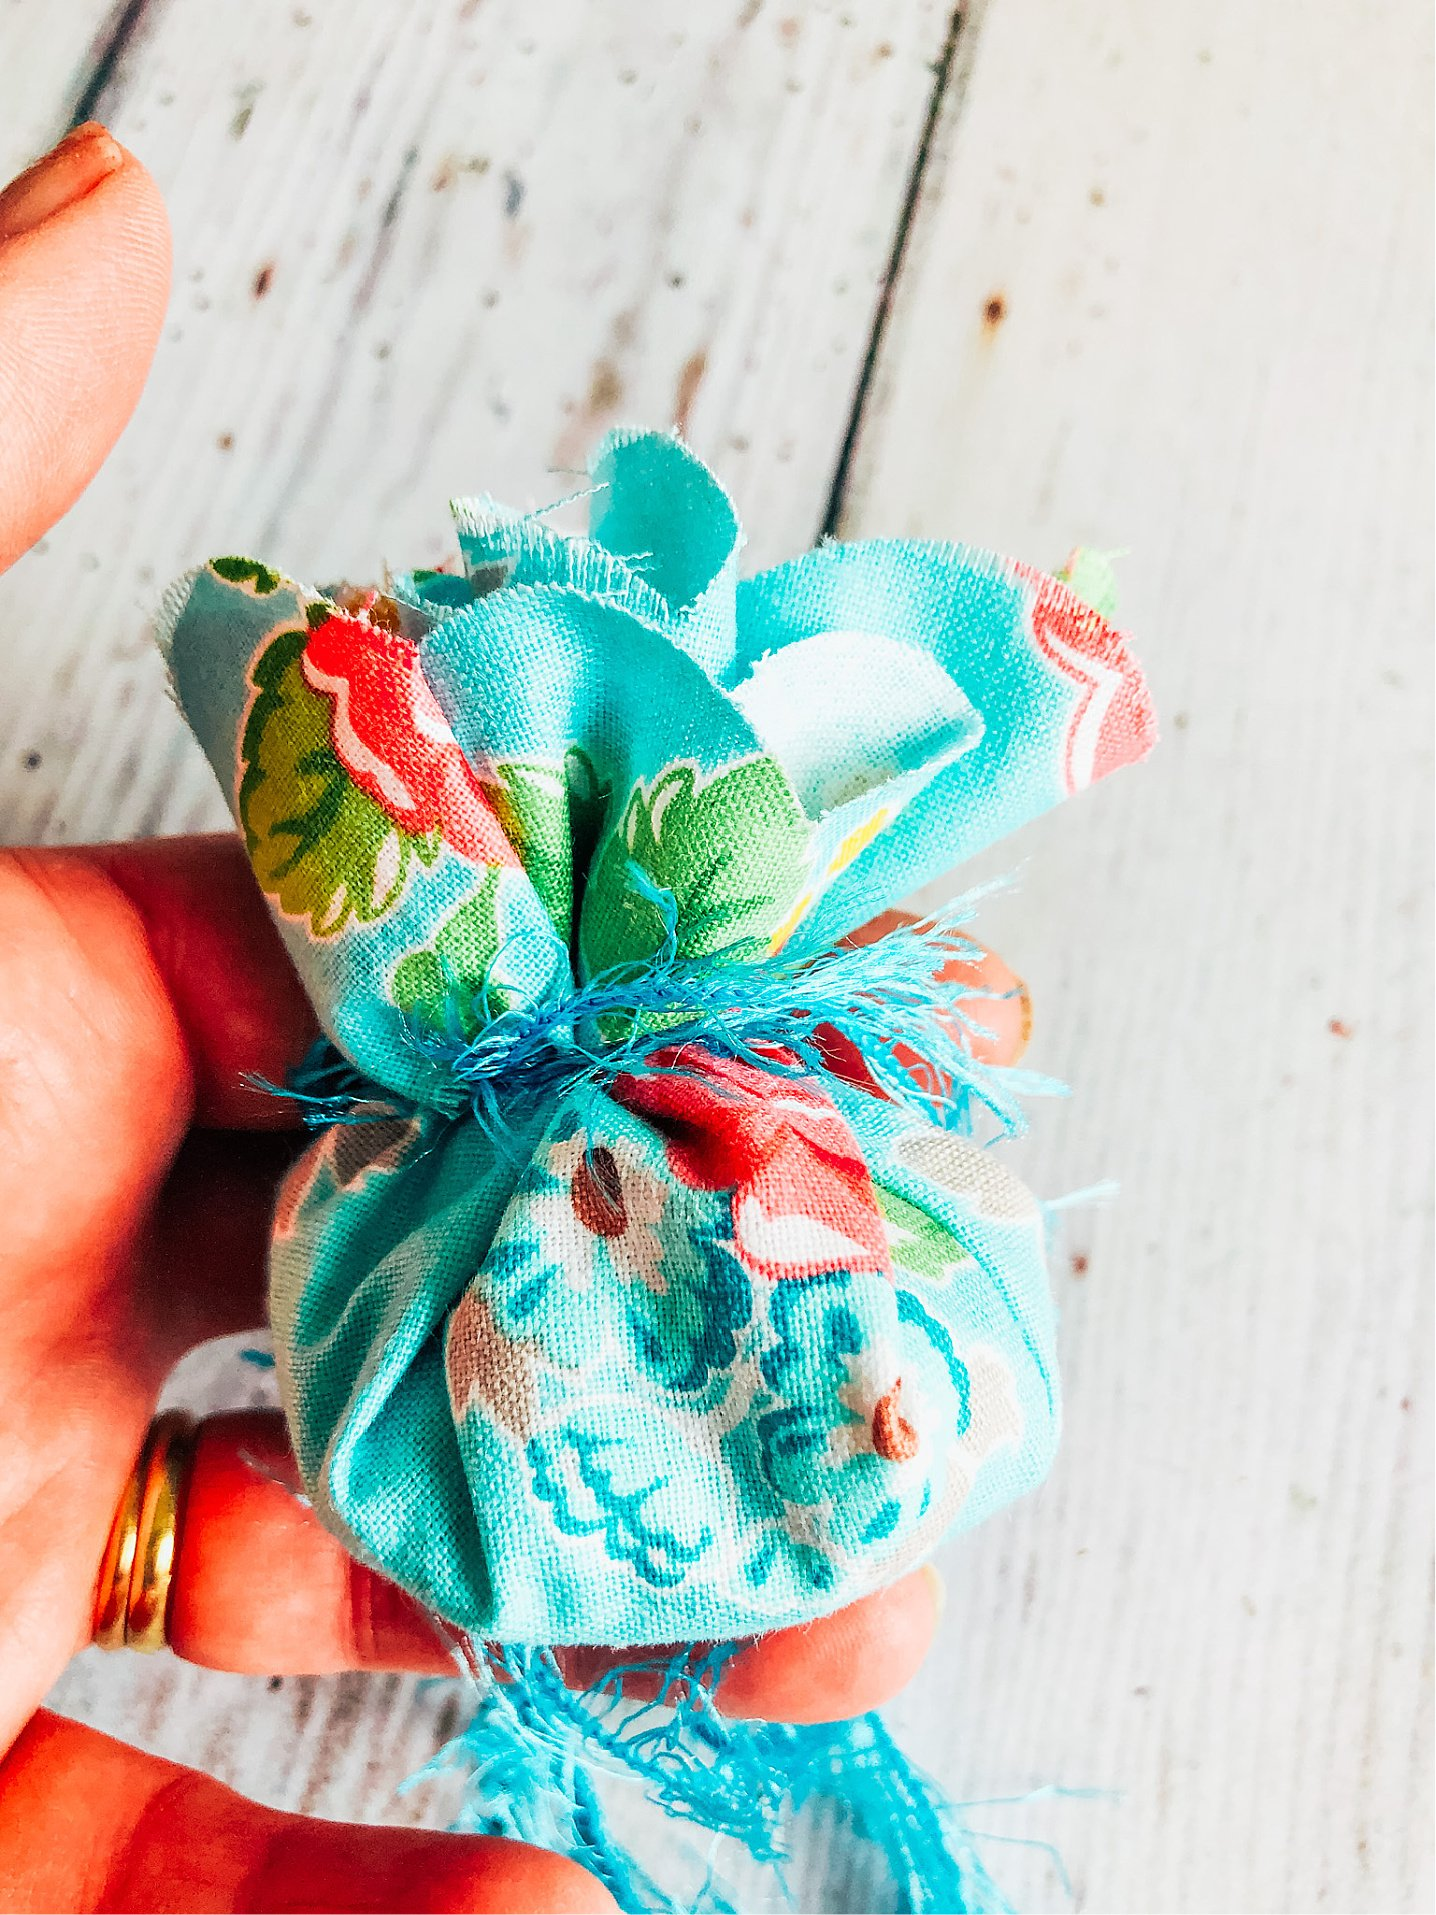 How to make Lavender Bags with Cricut